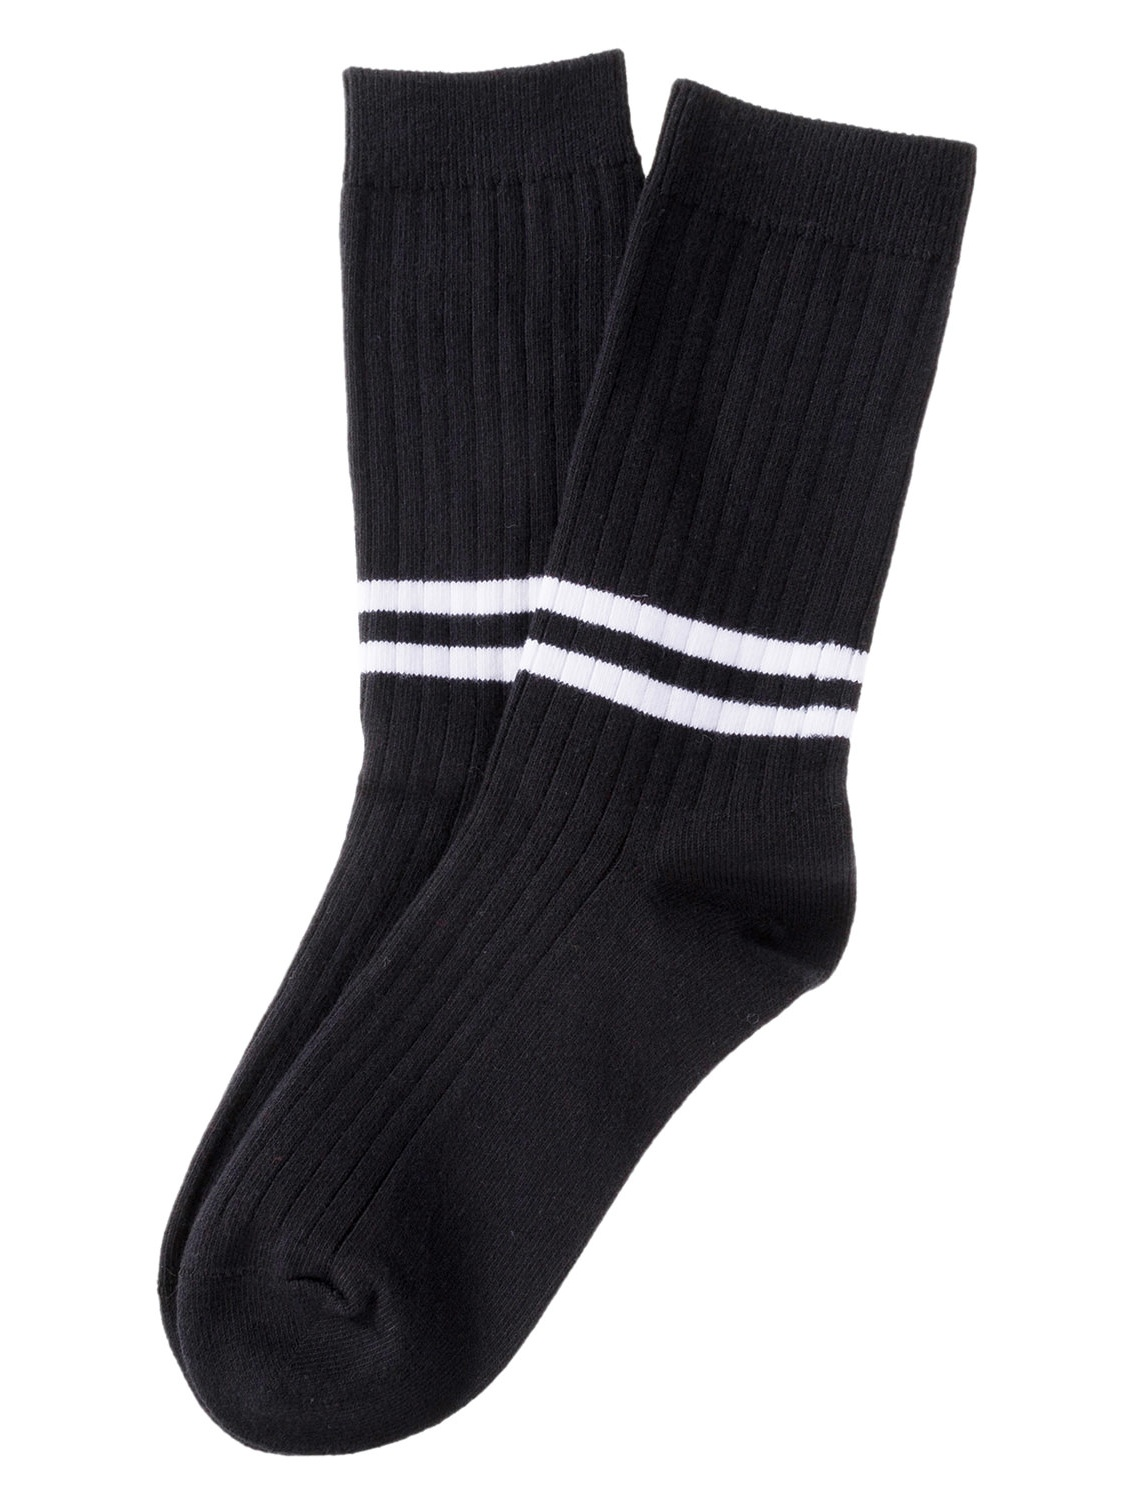 Lian LifeStyle Big Girl's 3 Pairs Cotton Blend Crew Socks Striped HR1790 Casual Size L/XL 3 Colors Style 01(Black, Cream, Brick Red)